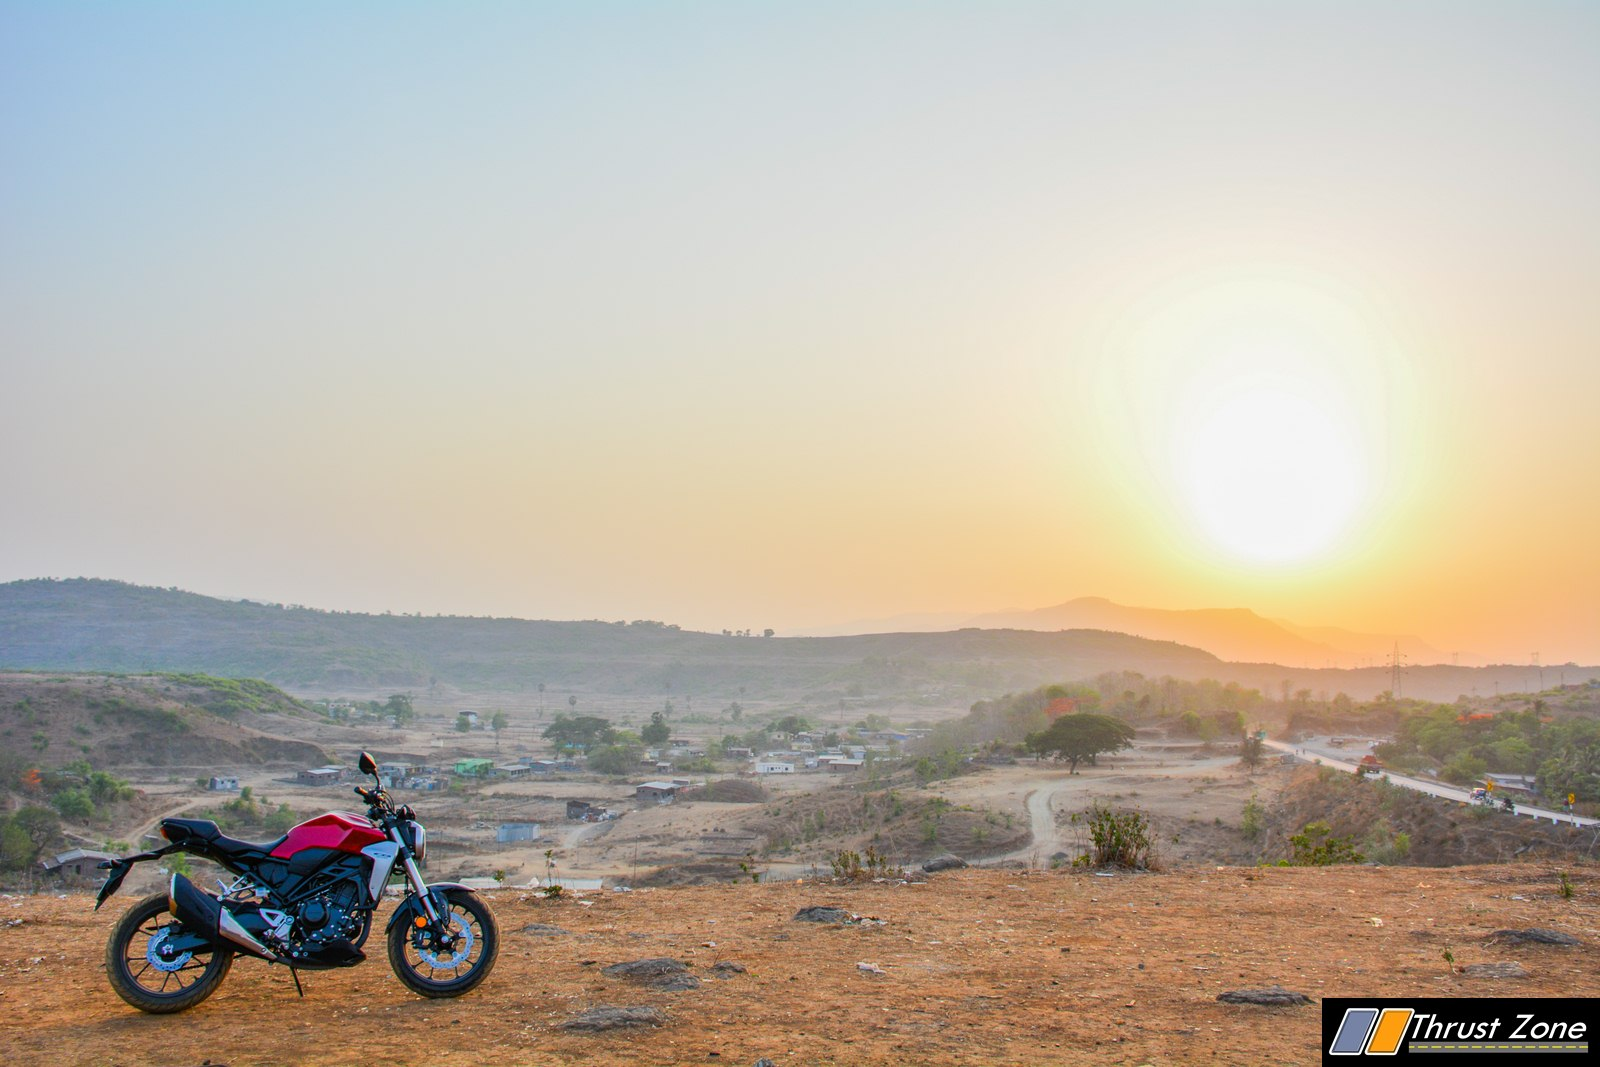 https://www.thrustzone.com/wp-content/uploads/2019/06/2019-Honda-CB300R-Review-India-7.jpg